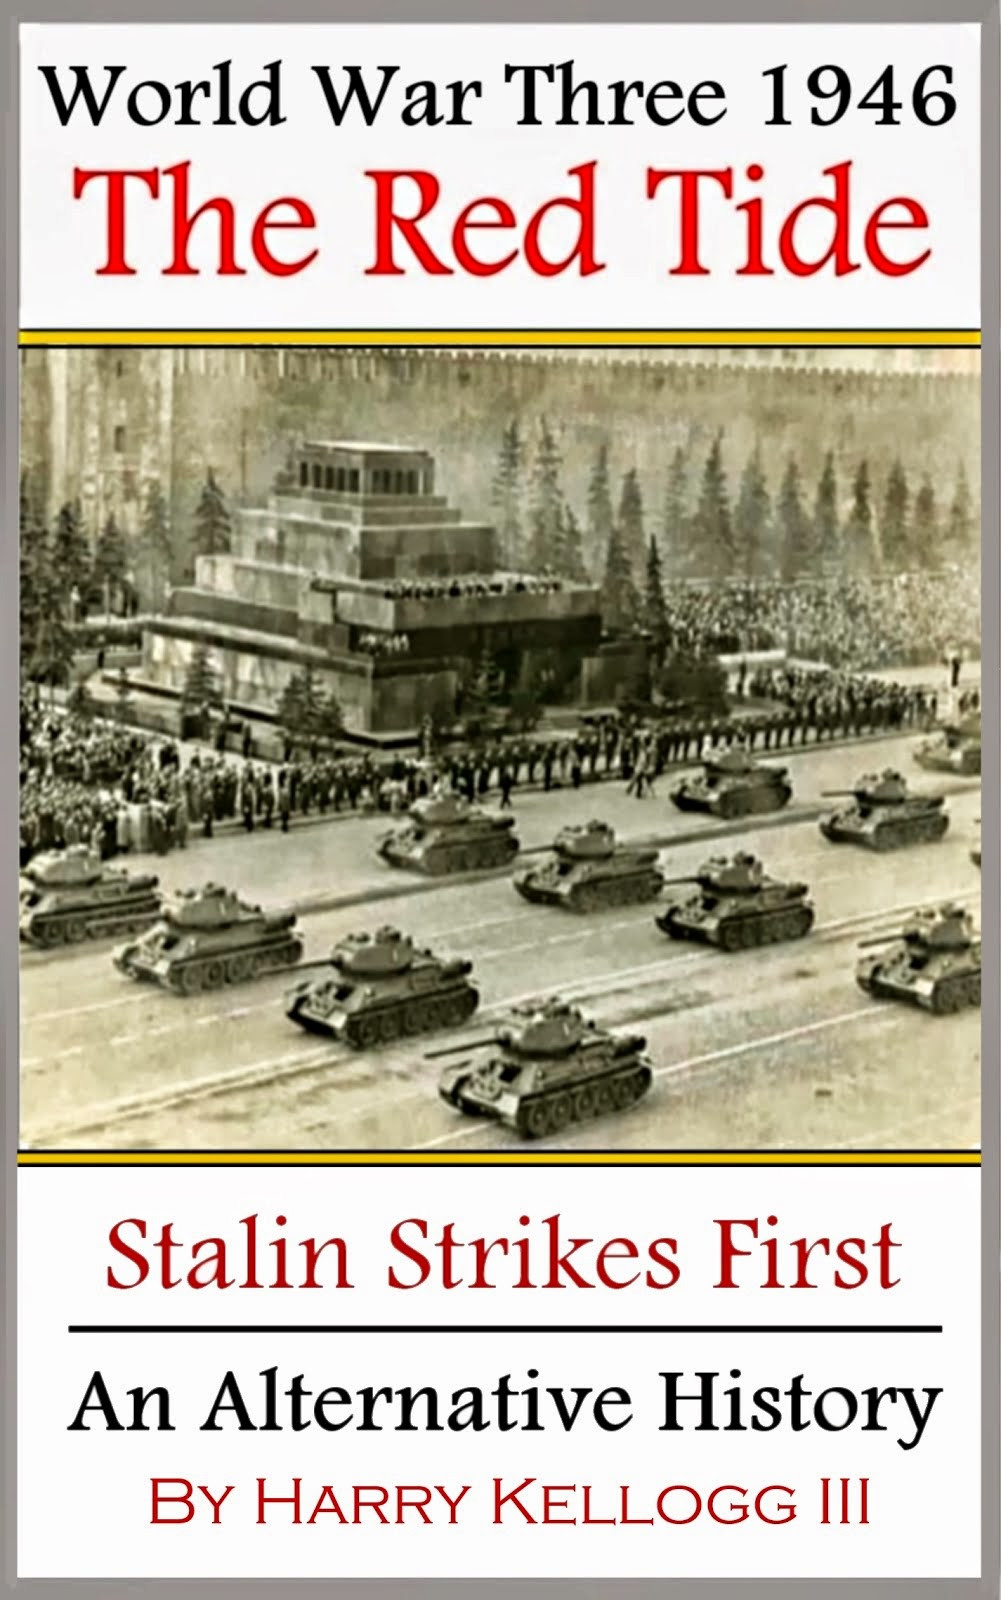 World War Three 1946 - The Red Tide - Stalin Strikes First